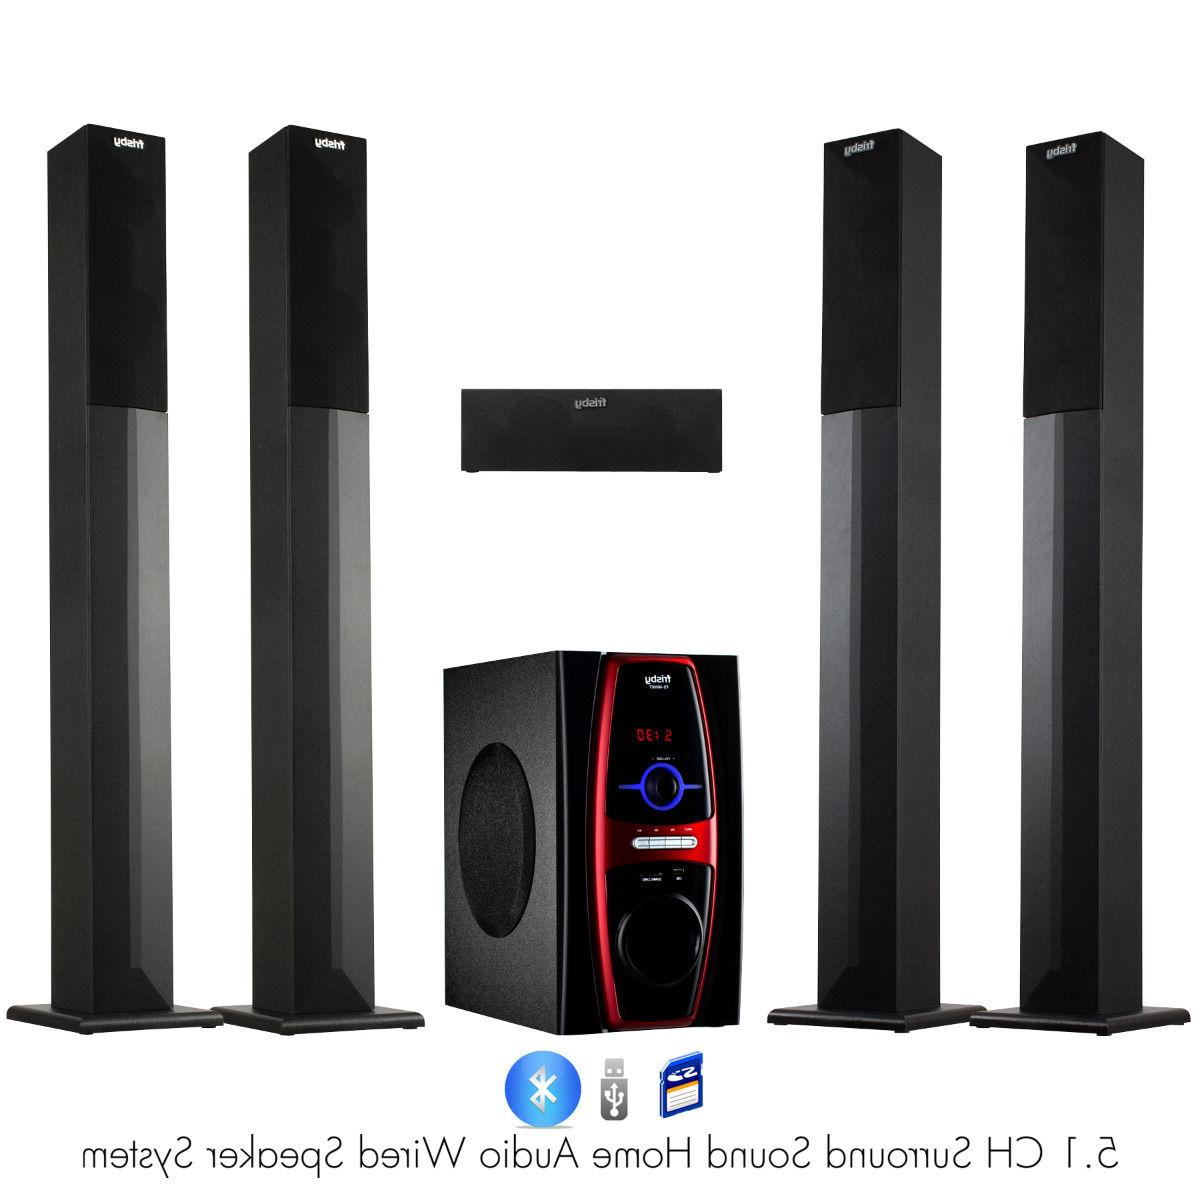 Frisby FS-6600BT 5.1 Channel Home Theater System w/ Surround